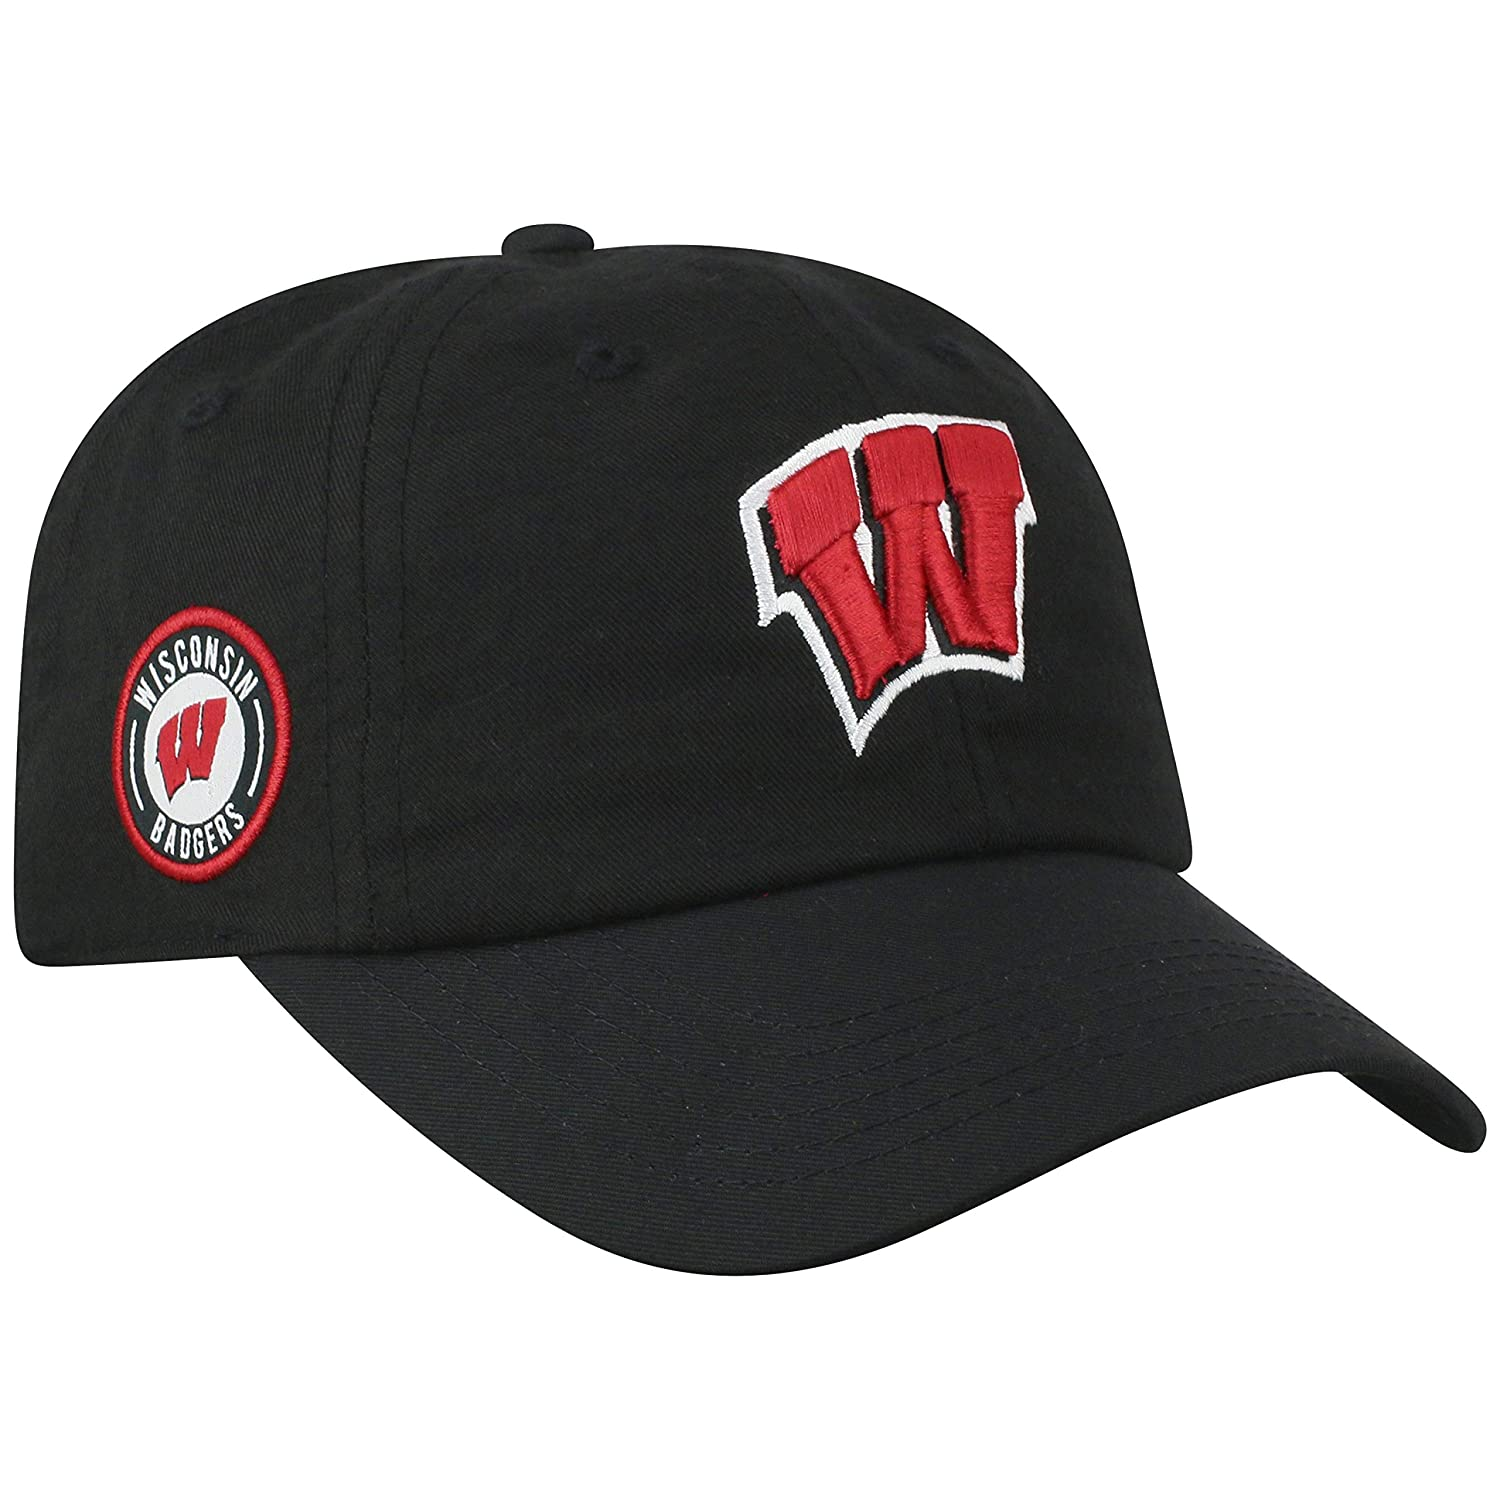 Top of the World Wisconsin Badgers Official NCAA Adjustable Black Curved Bill Staple 4 Hat Cap 745671